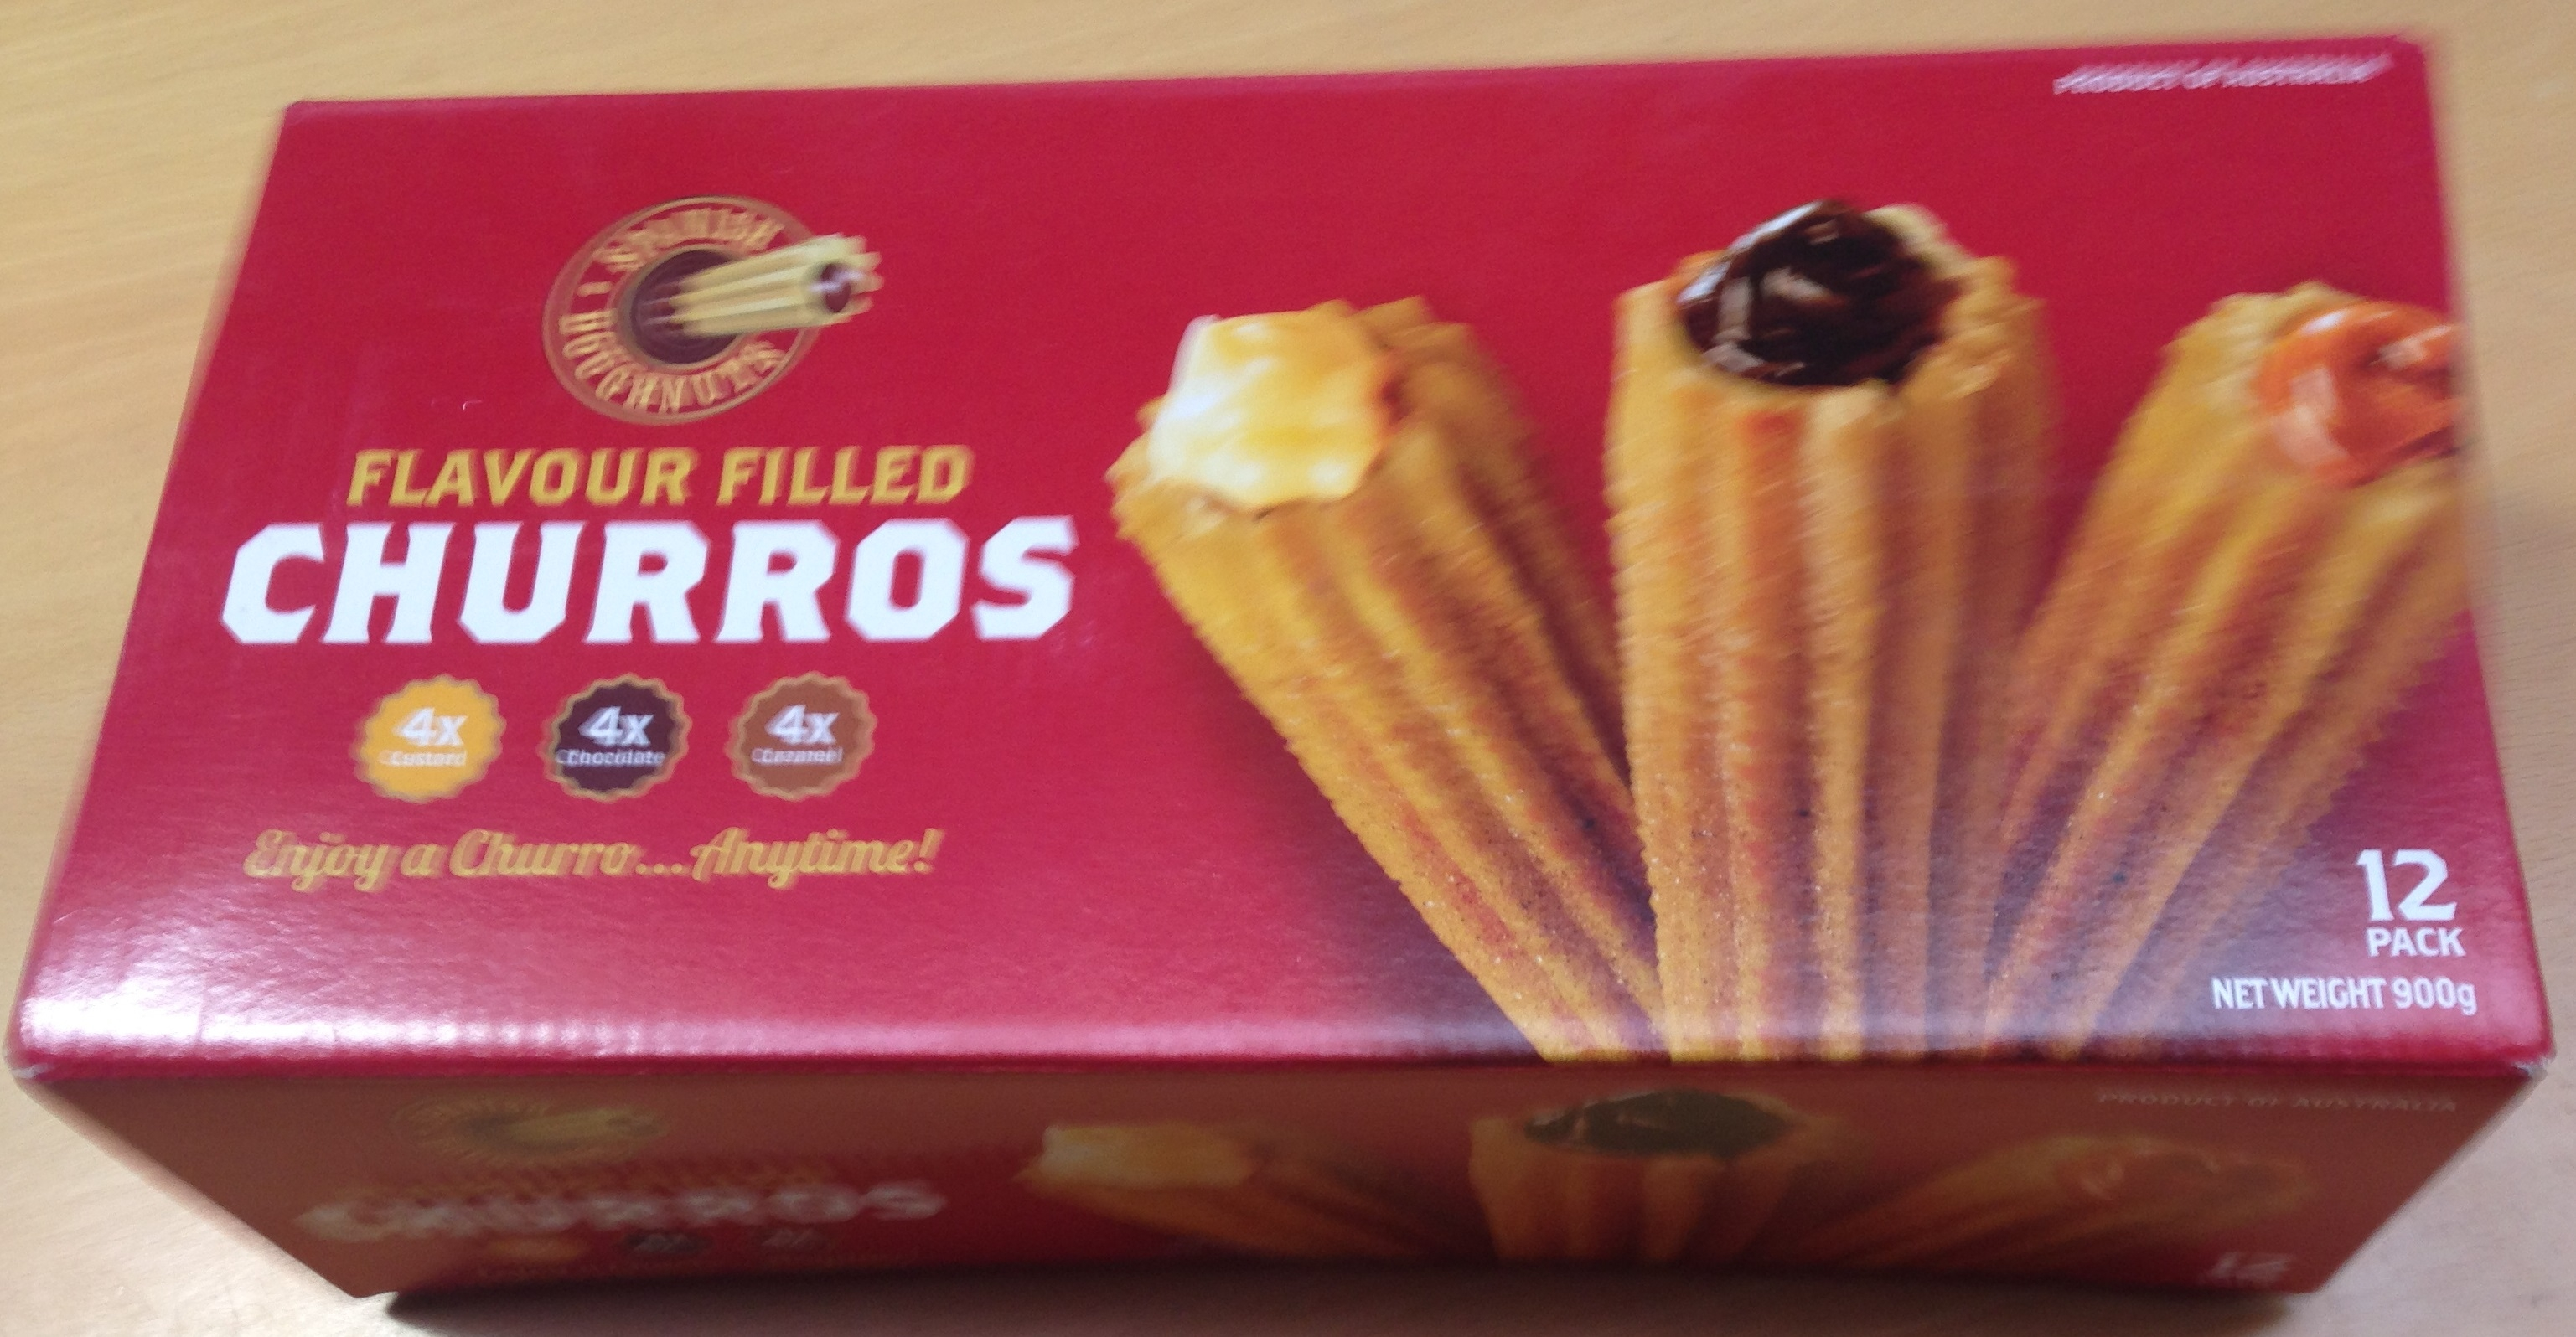 Costco Spanish Doughnuts Flavour Filled Churros Product